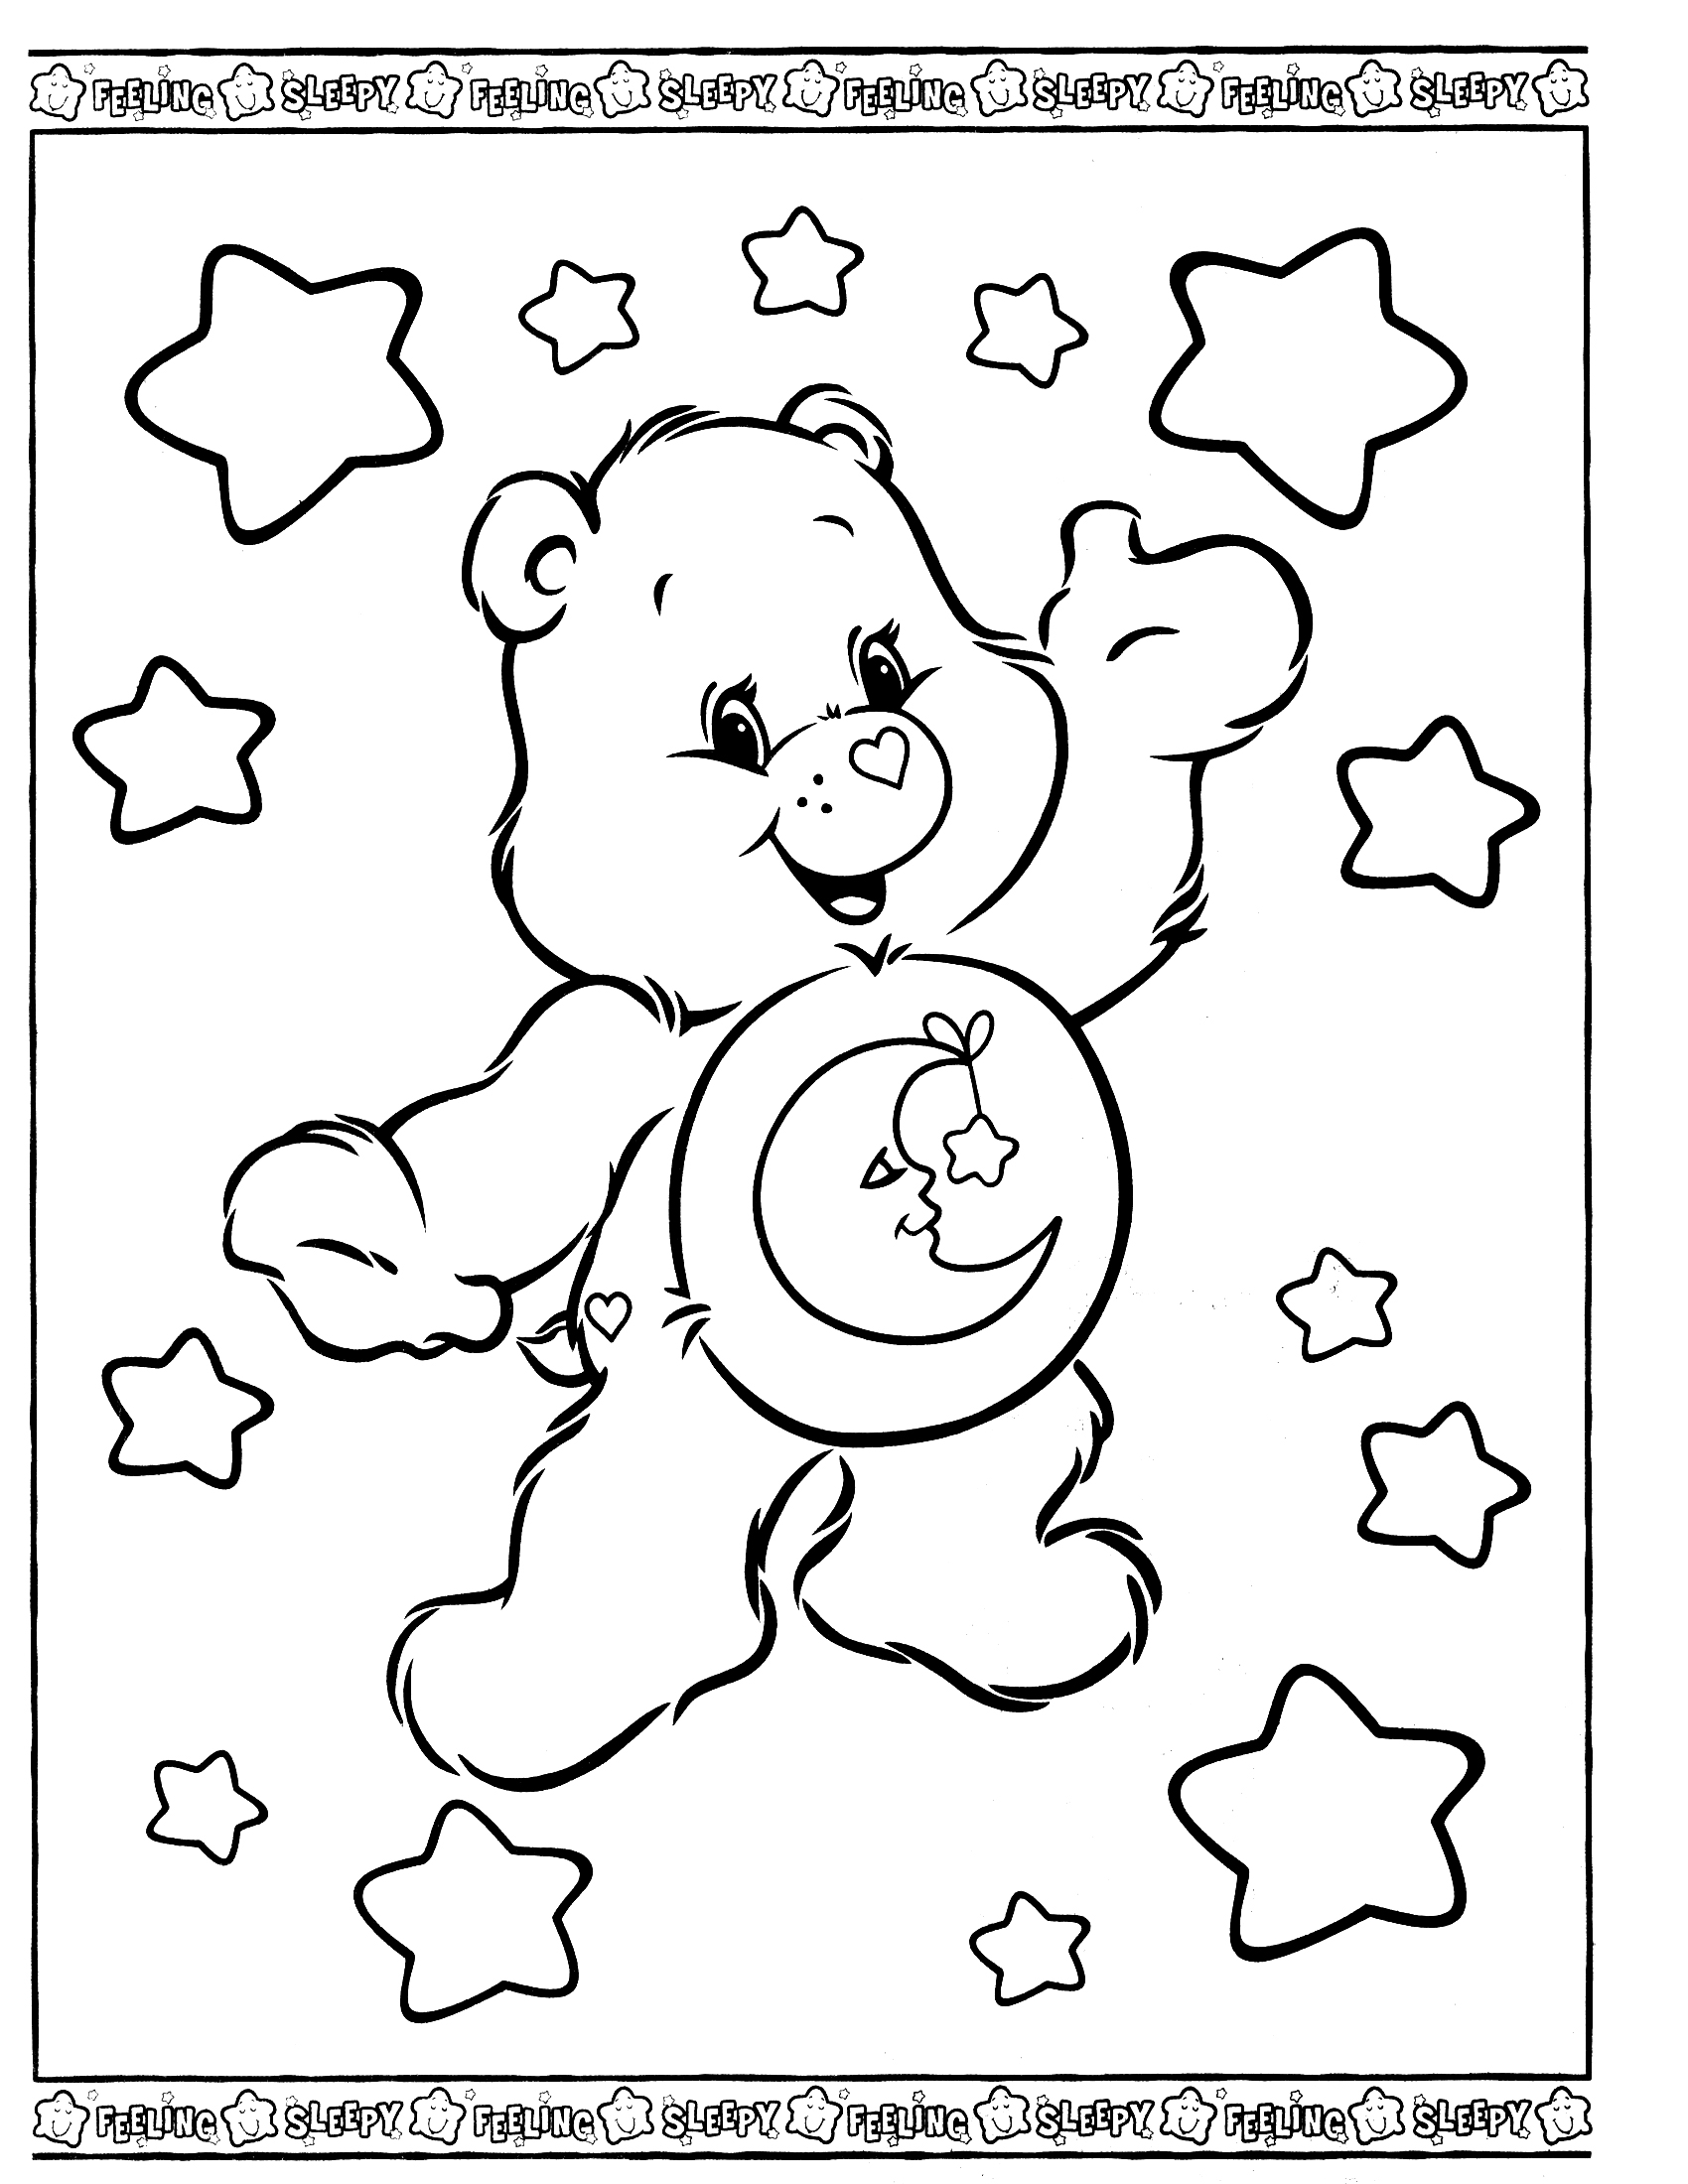 Care Bears Cartoons Printable Coloring Pages